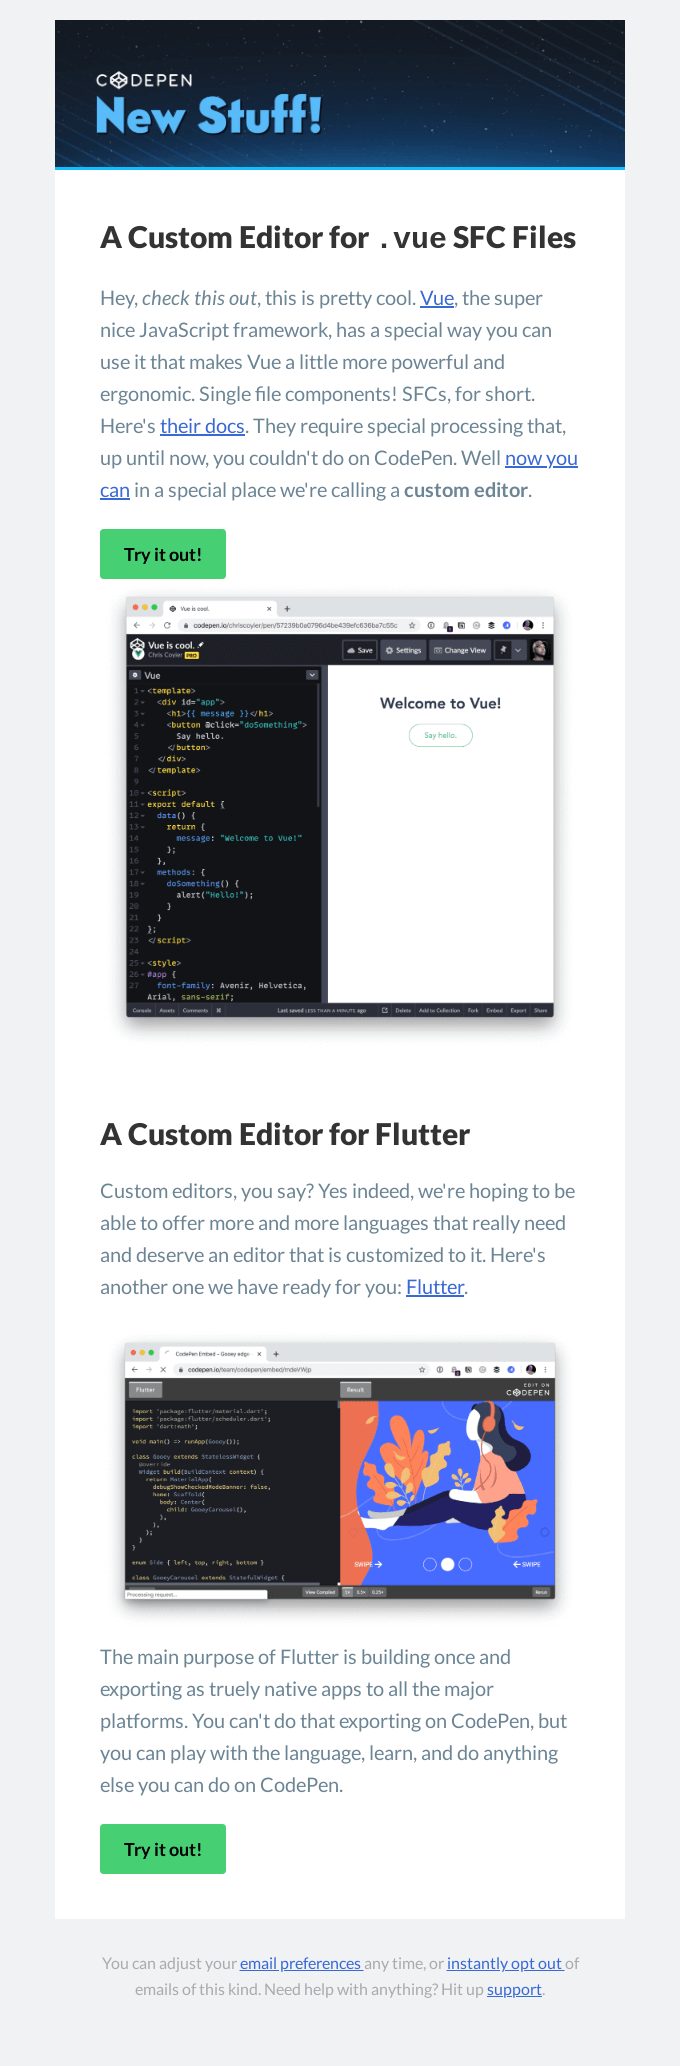 New Feature! Vue and Flutter